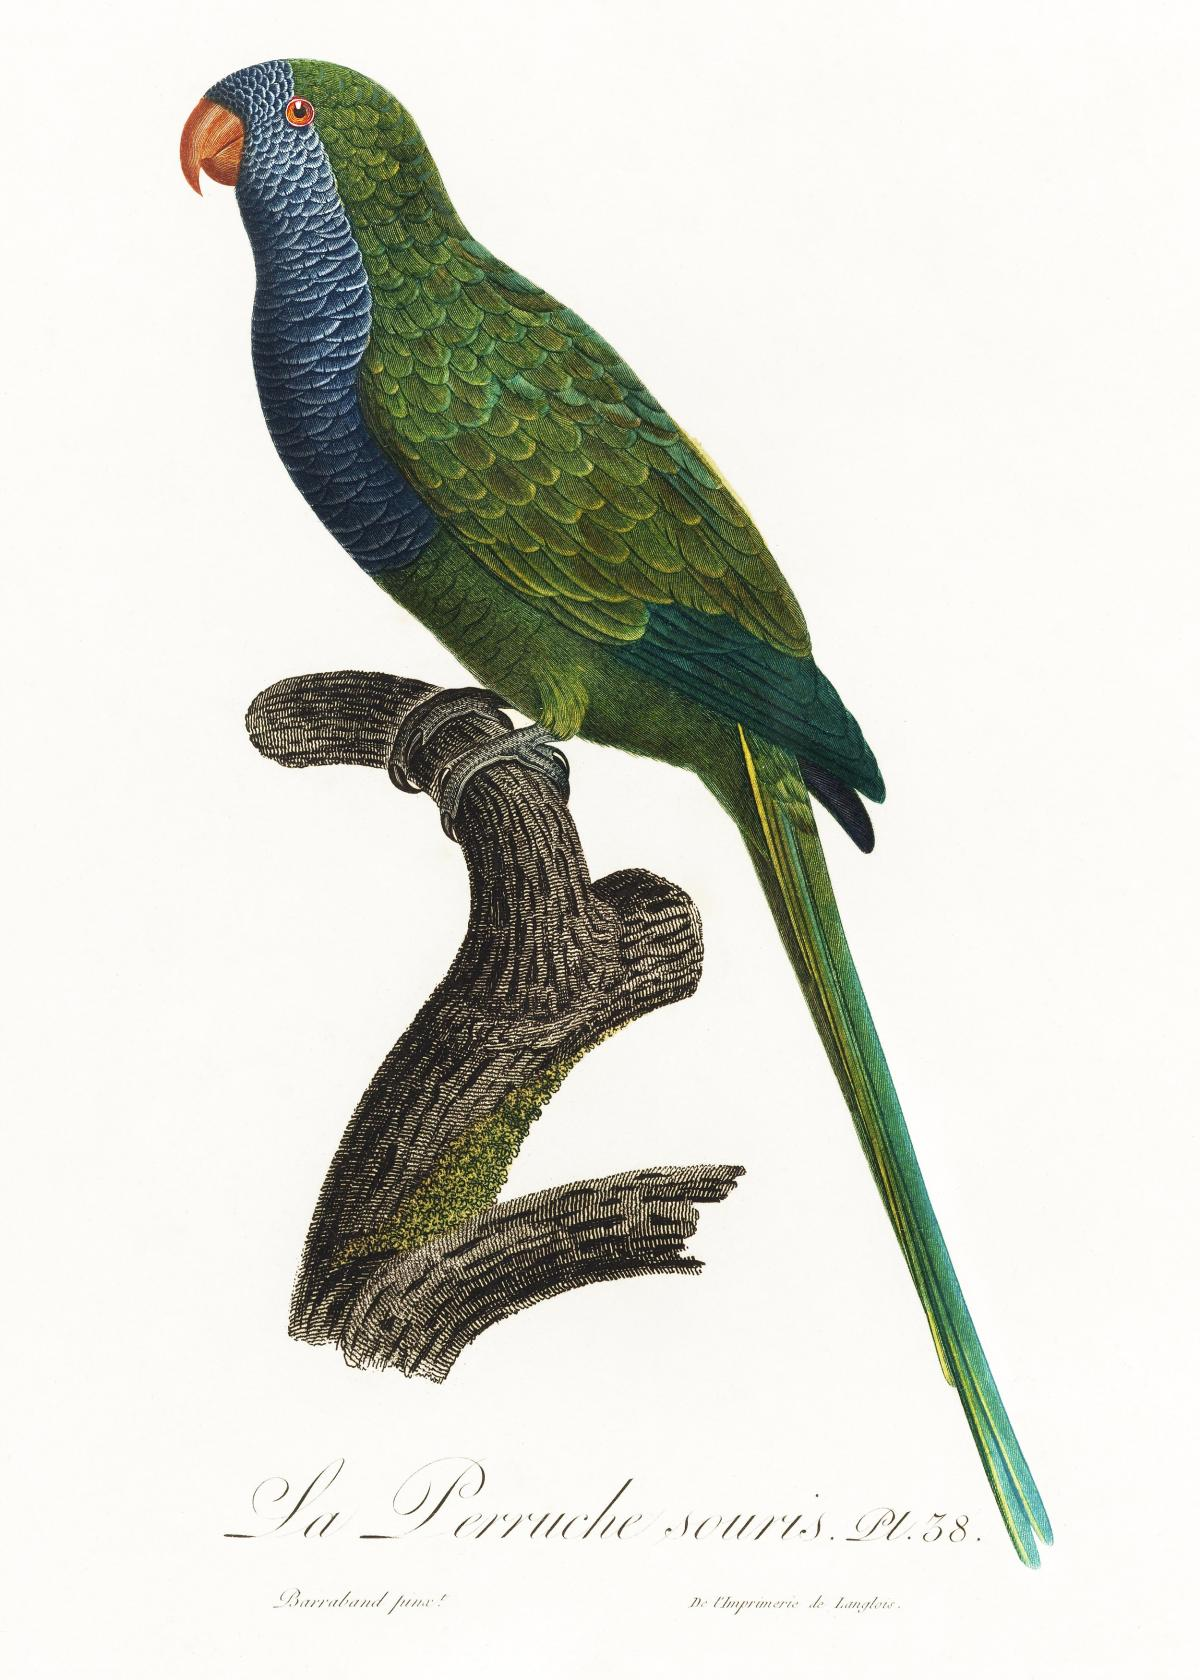 The Monk Parakeet, Myiopsitta monachus from Natural History of Parrots (1801—1805) by Francois Levaillant. Original from the Biodiversity Heritage Library.  #390437